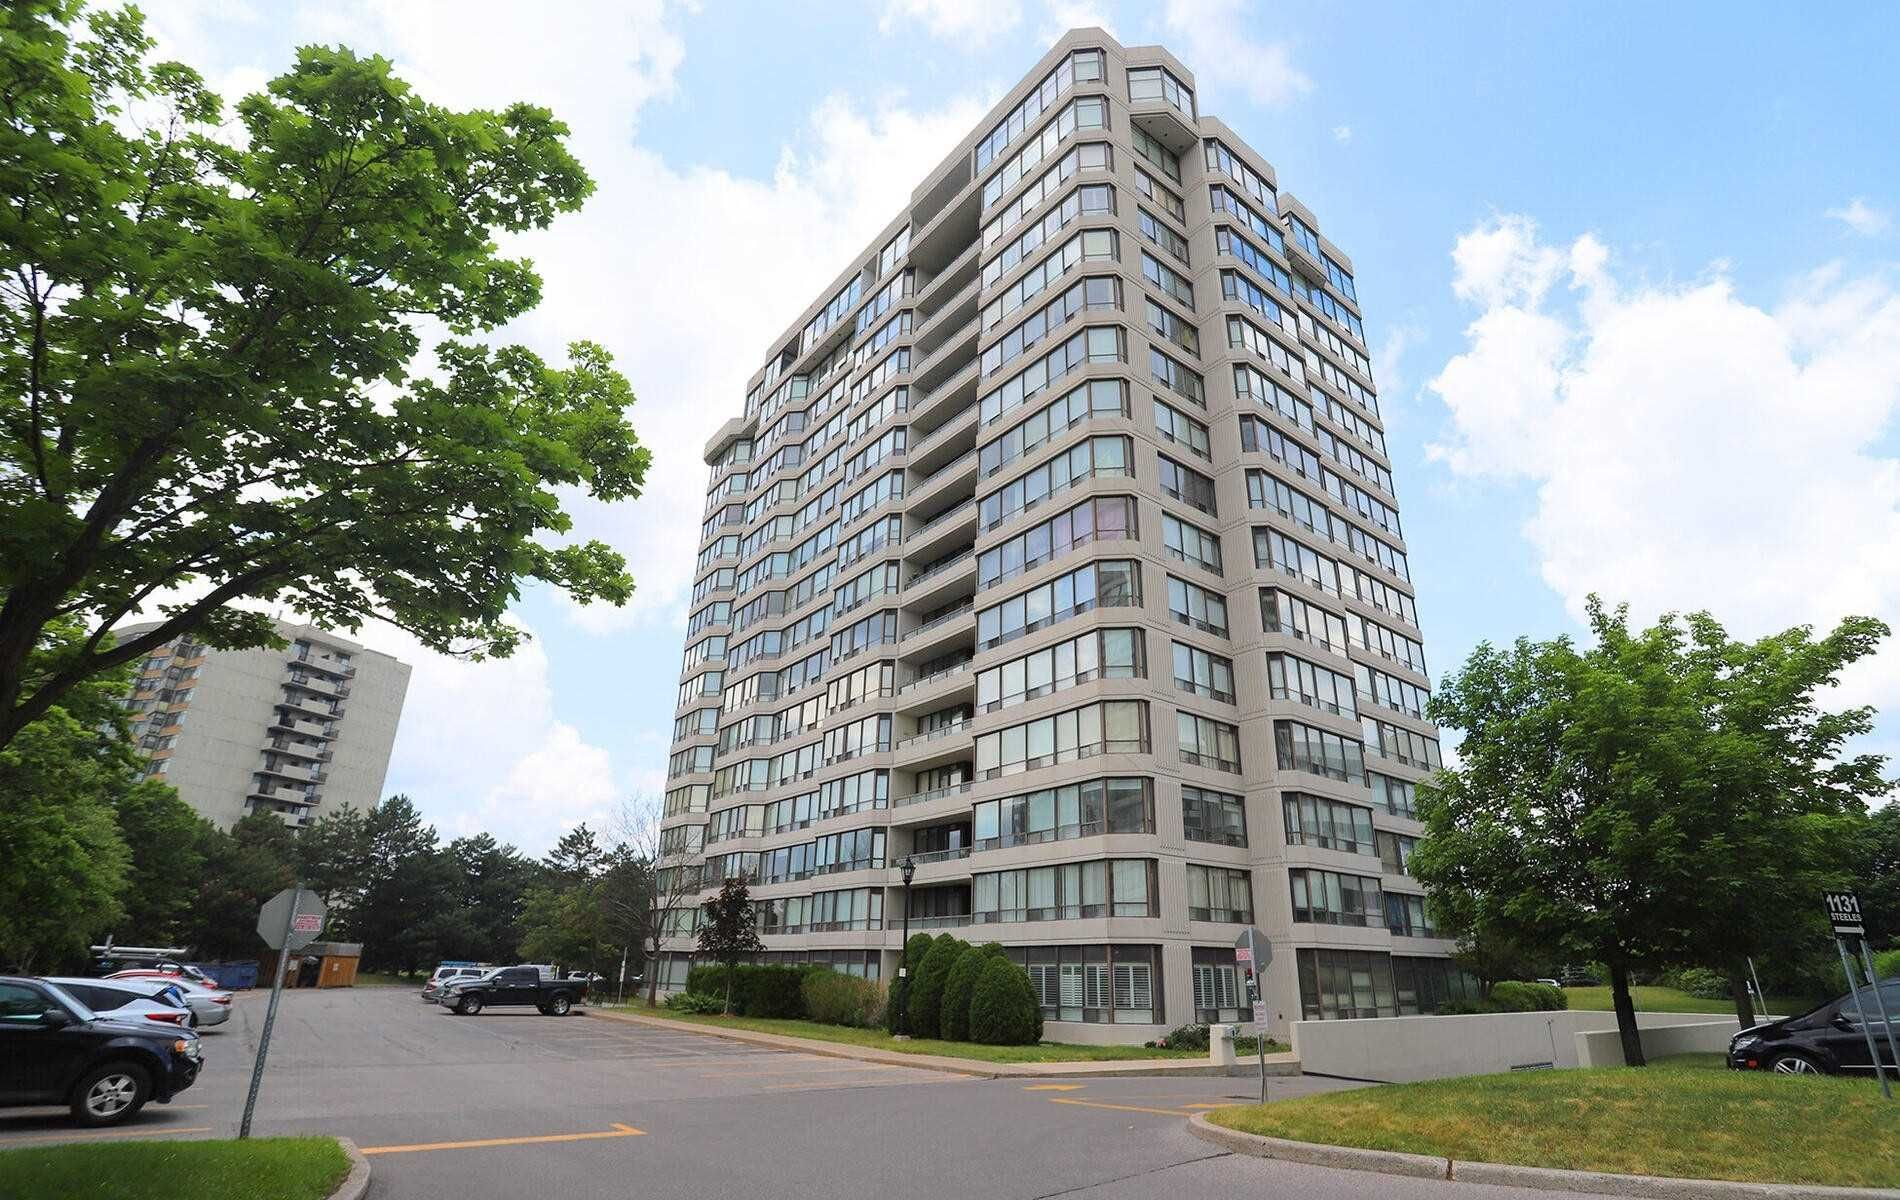 1131 Steeles Ave W, unit 1102 for sale in Toronto - image #2